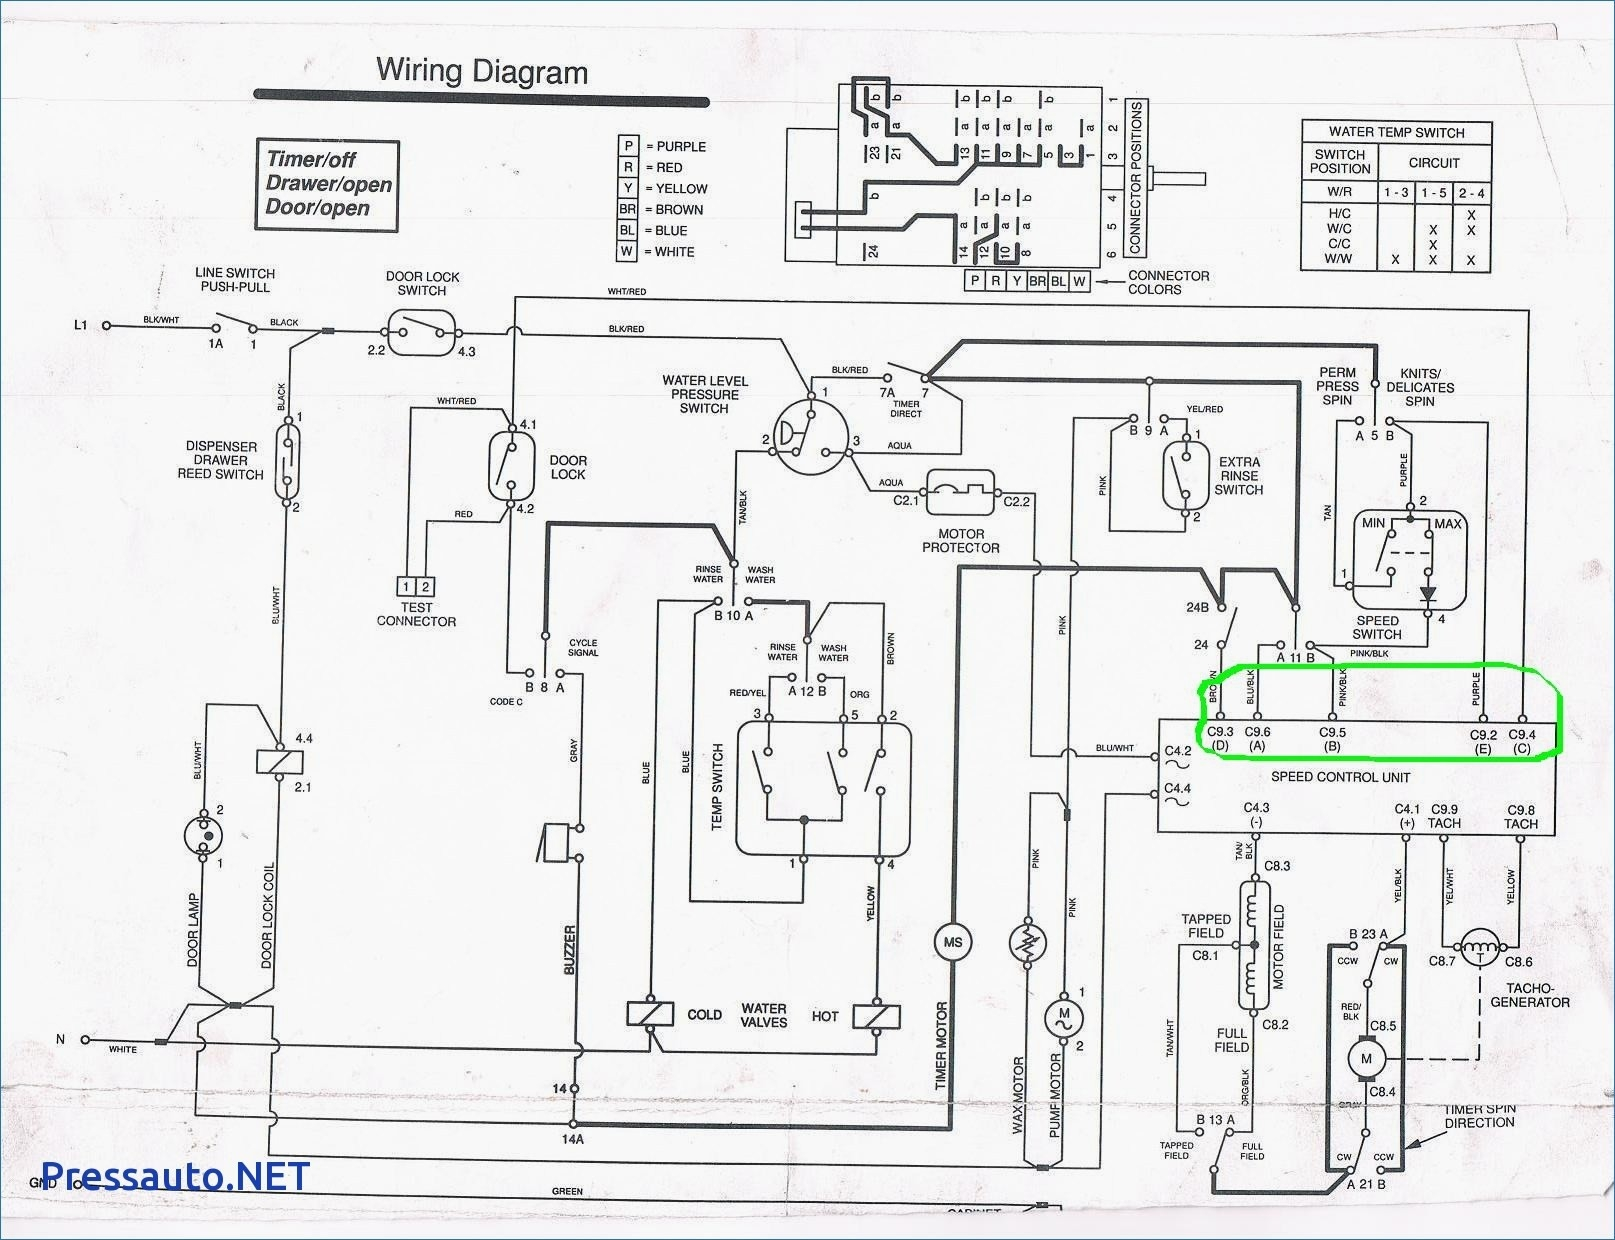 Whirlpool Water Heater Wiring Schematic